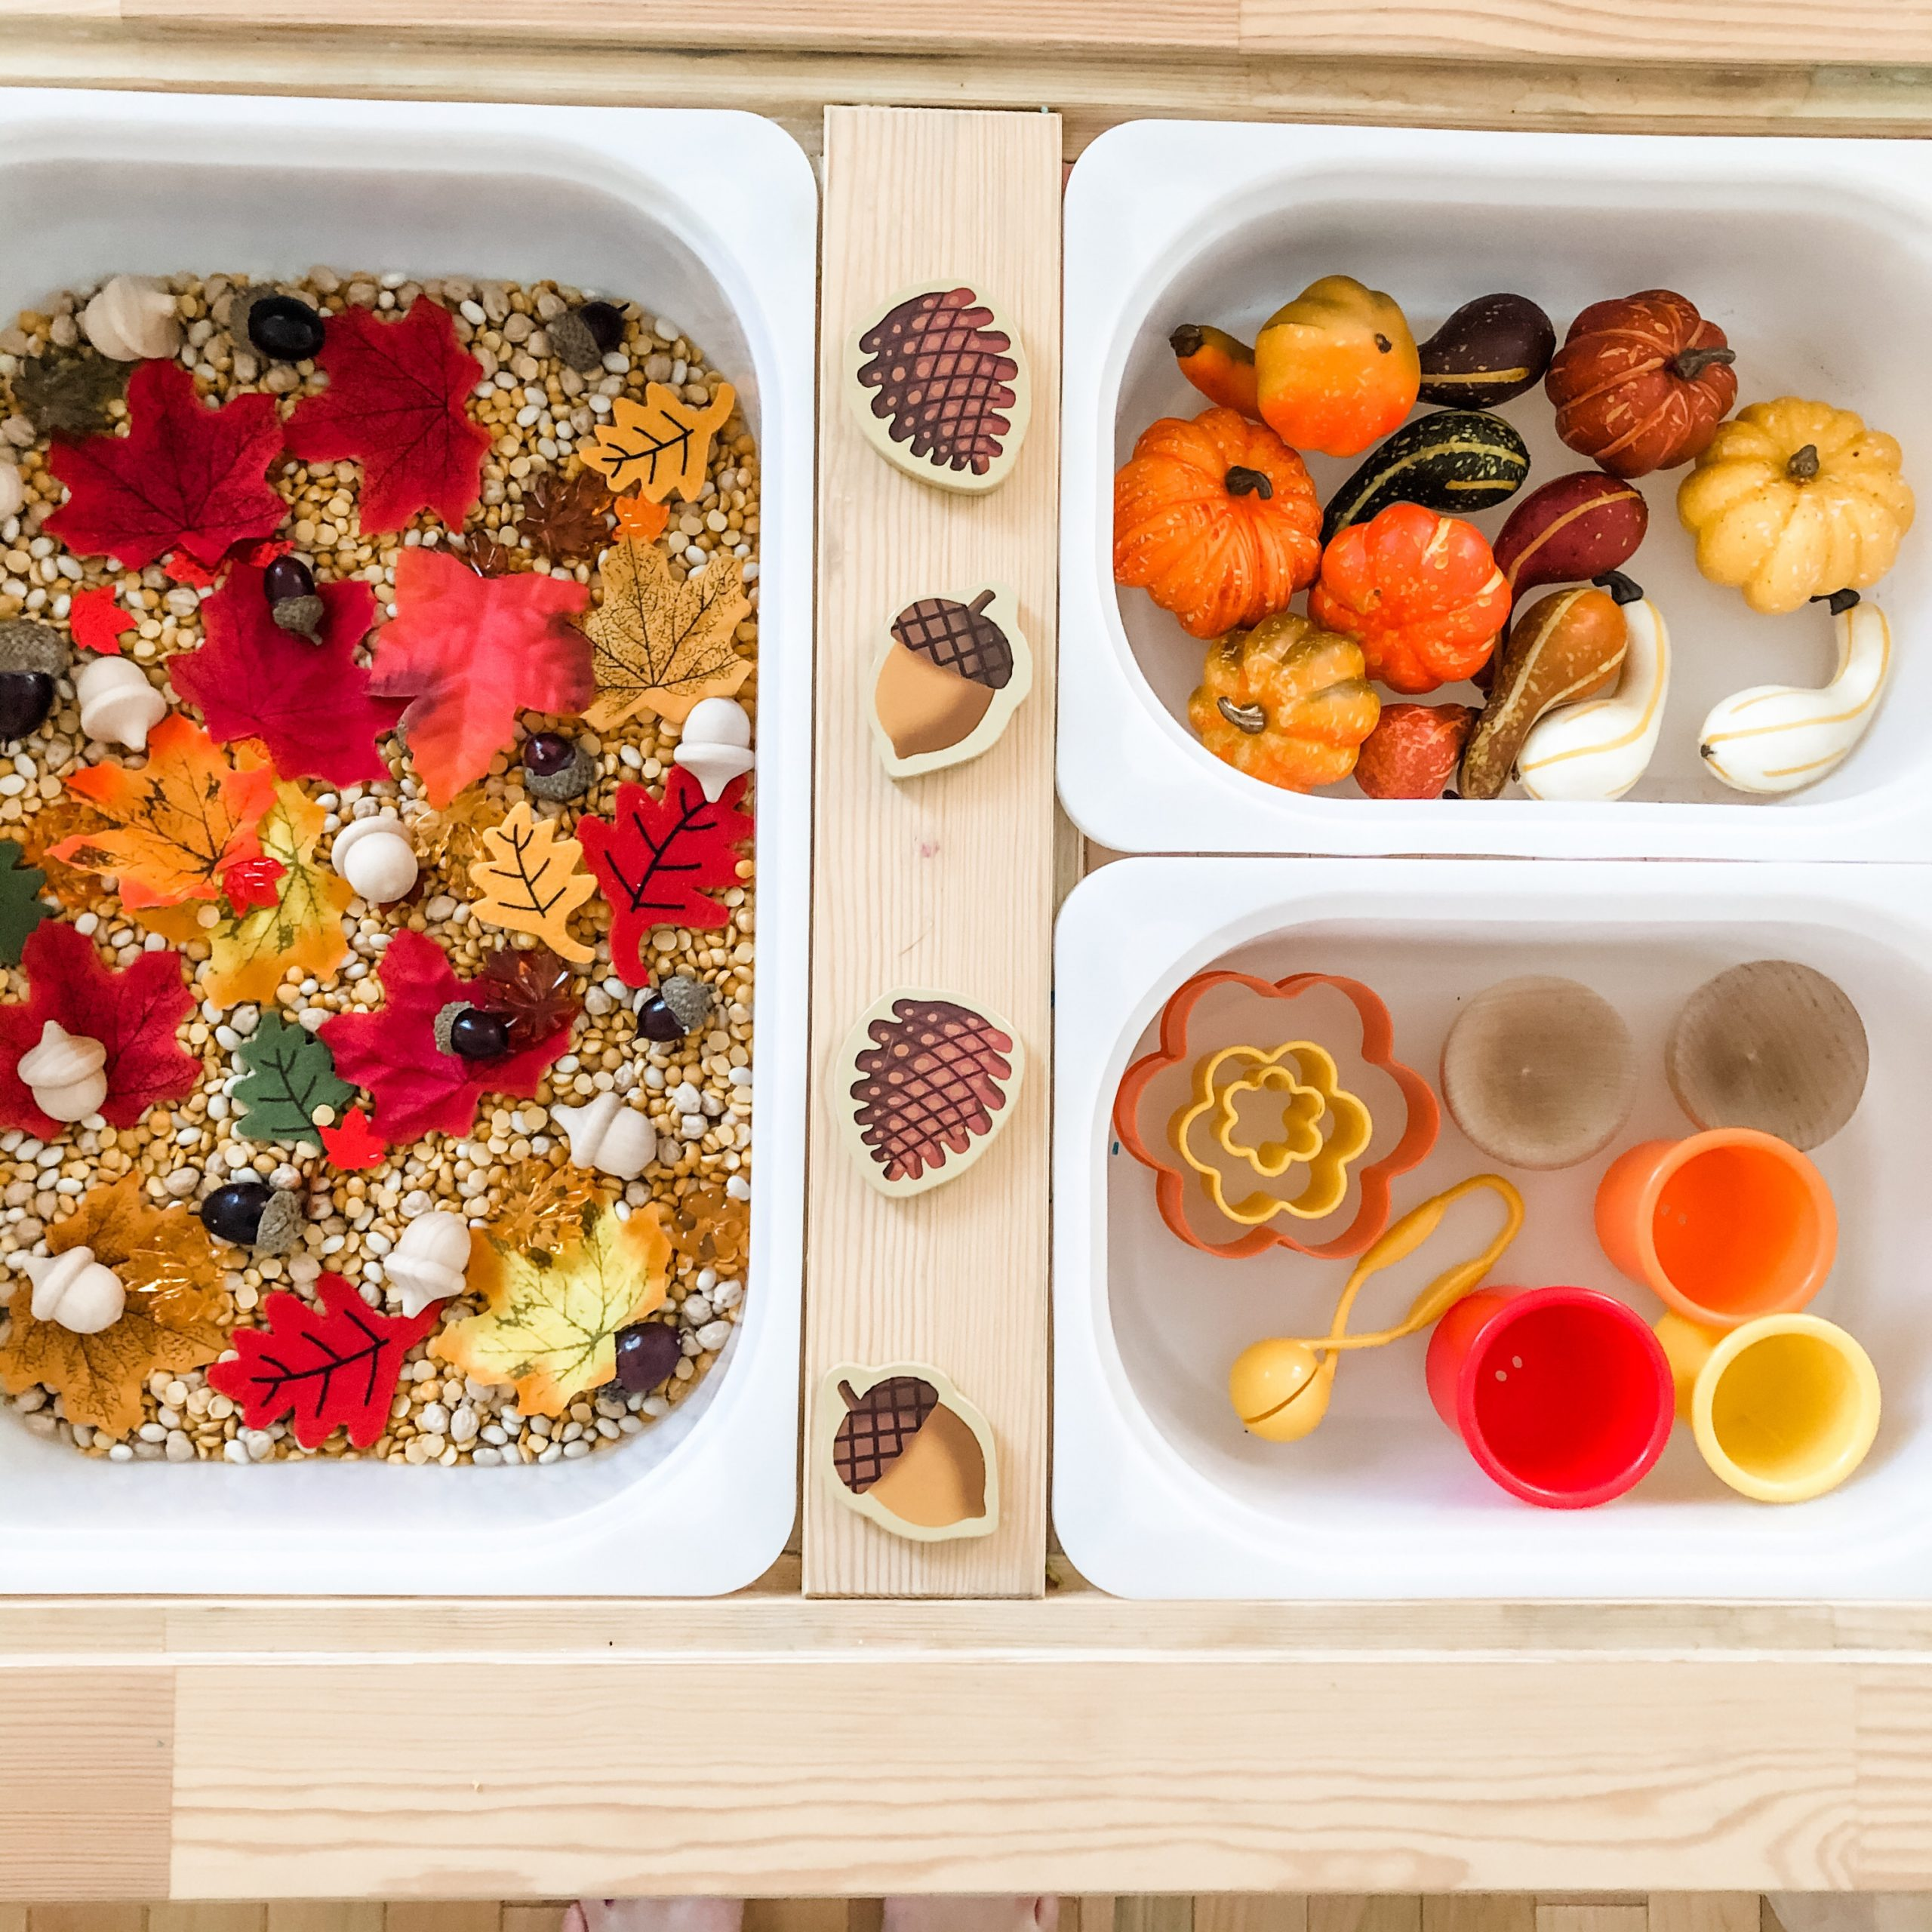 Autumn Sensory Bin - 5 Ways to Play